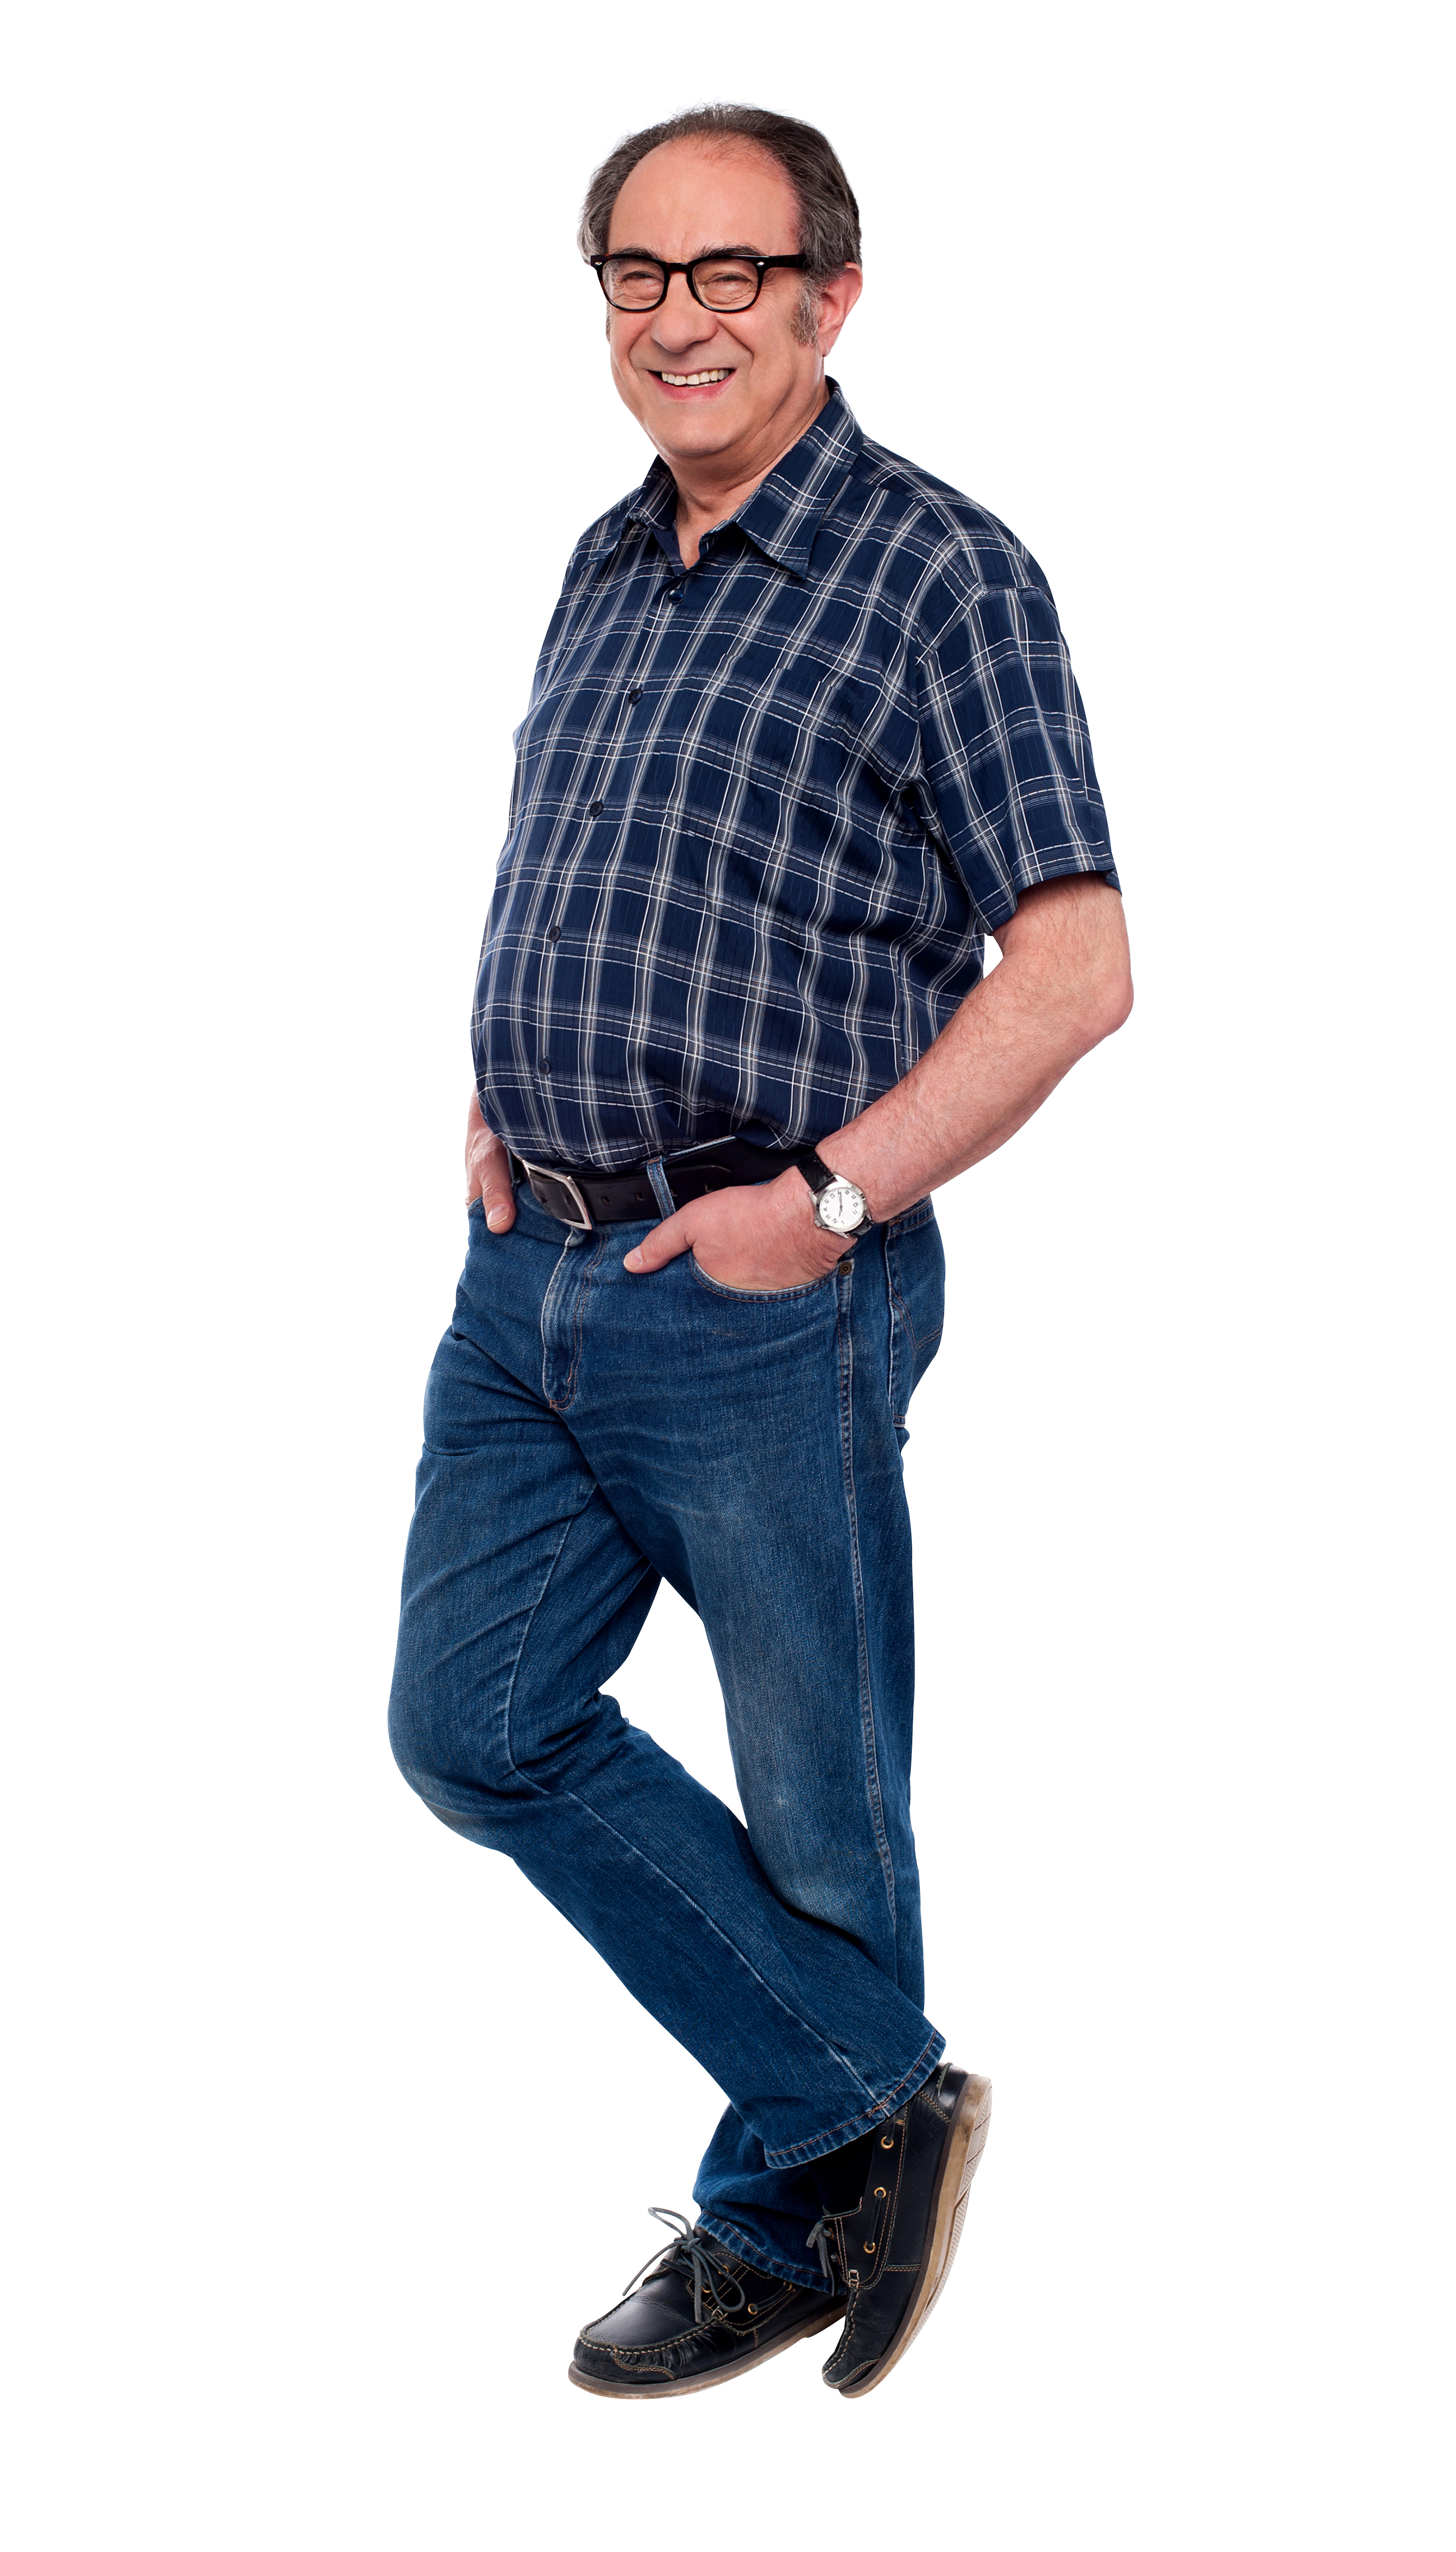 Old Man Standing Png - Old Man Png, Transparent background PNG HD thumbnail